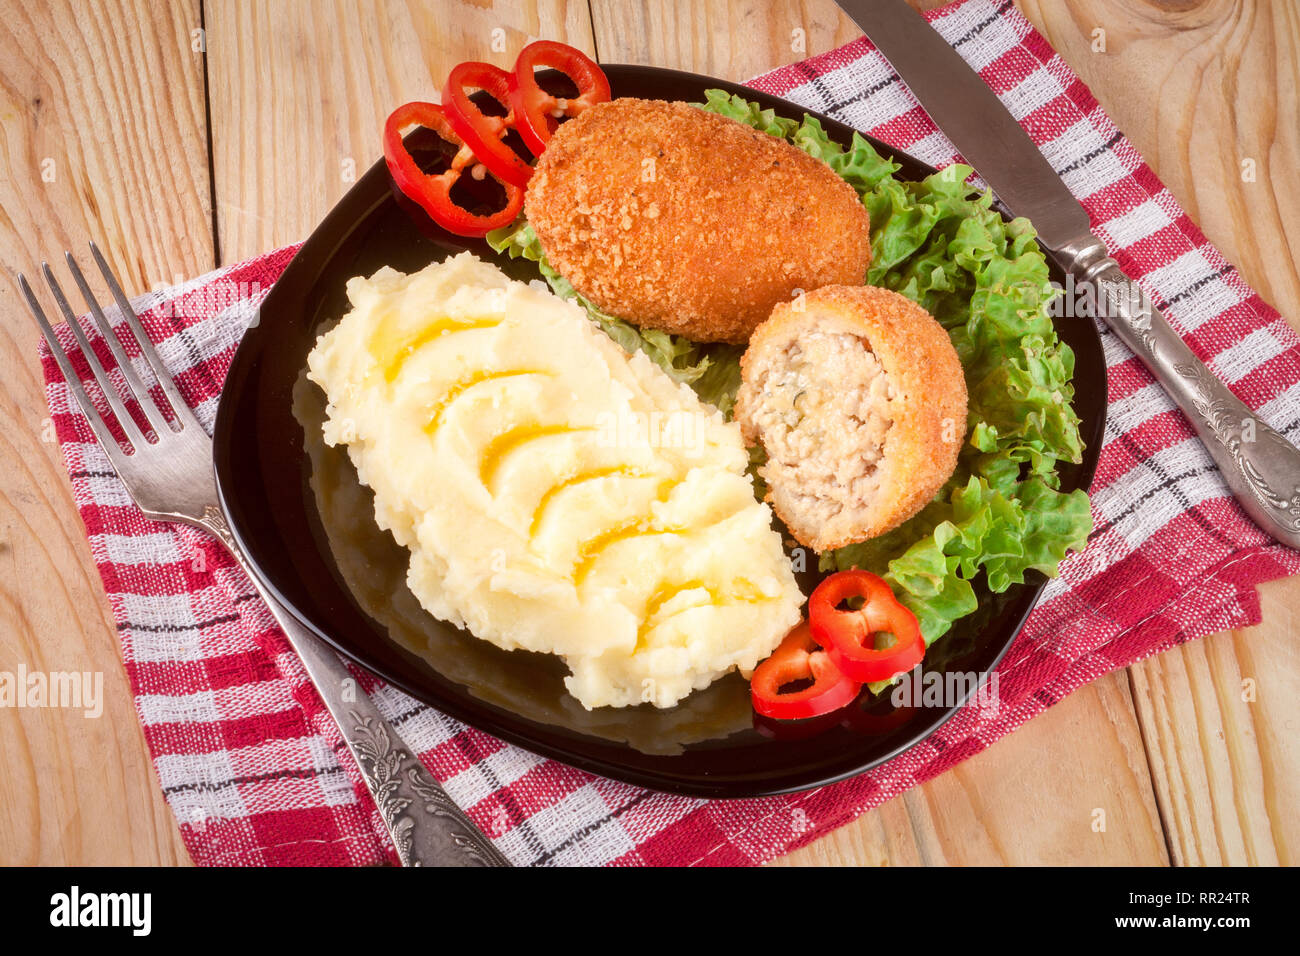 two fried breaded cutlet with mashed potatoes and lettuce on a black plate wooden background - Stock Image